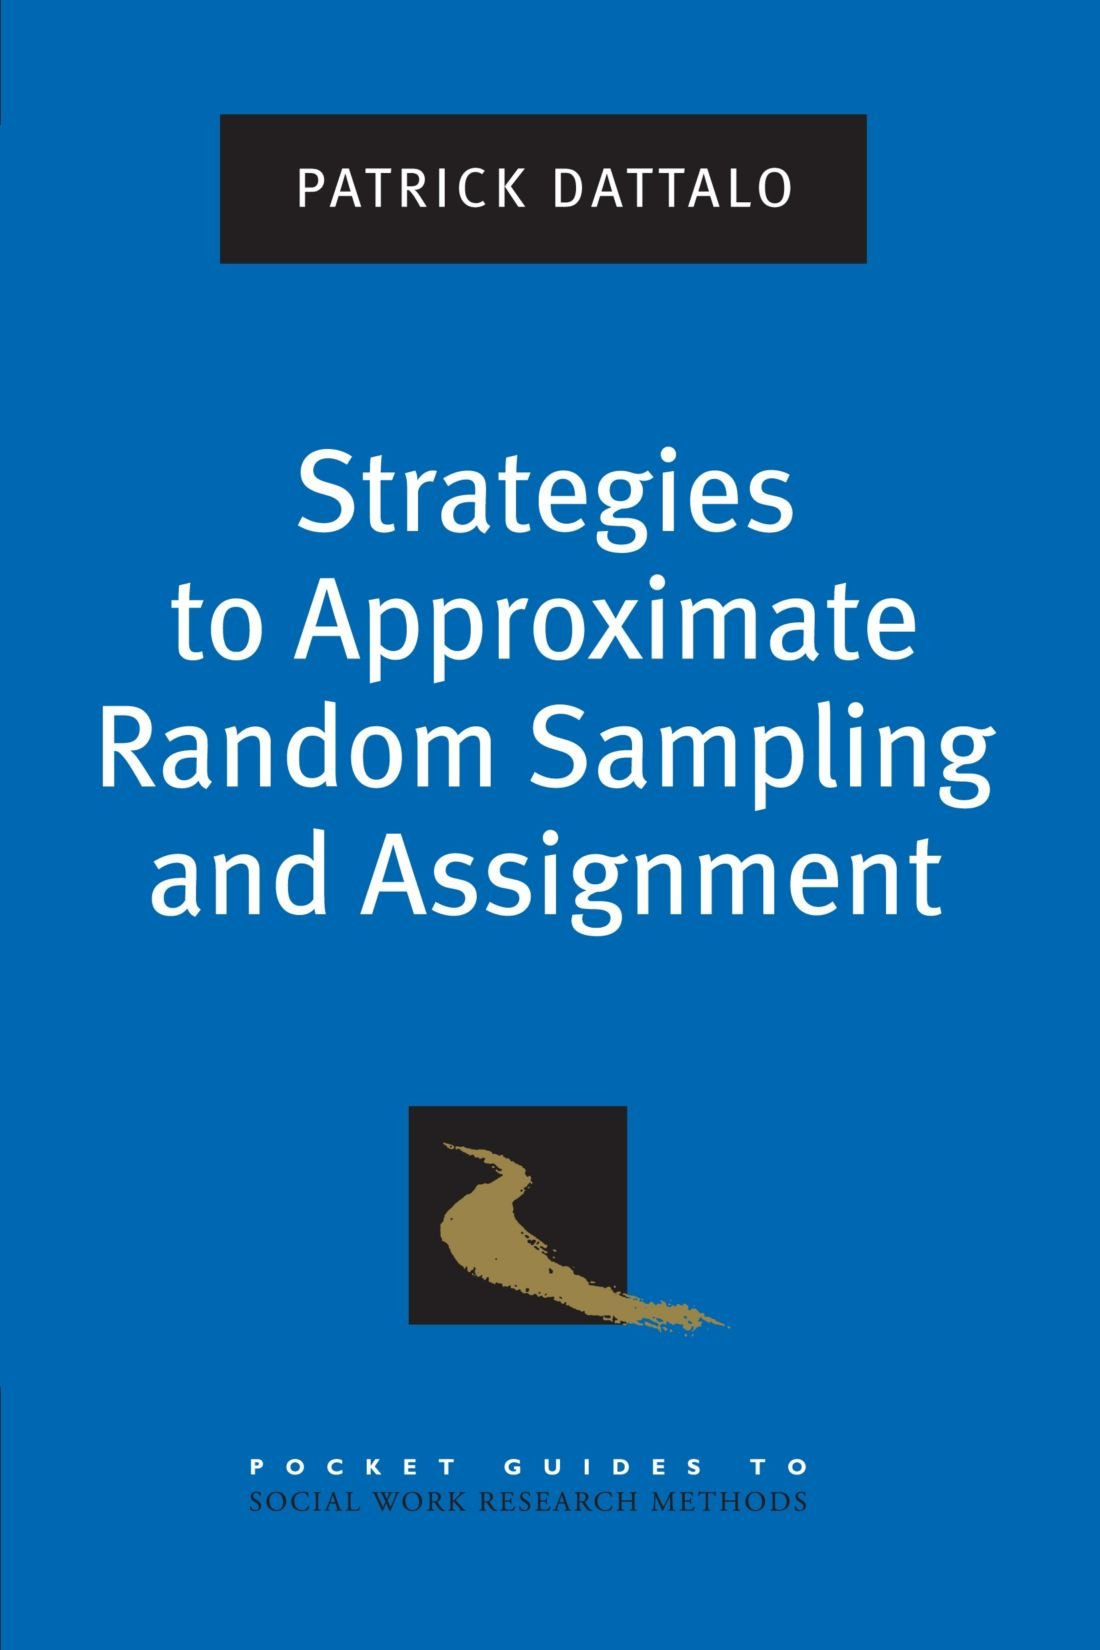 Strategies to Approximate Random Sampling and Assignment (Pocket Guides to Social Work Research Methods) free download